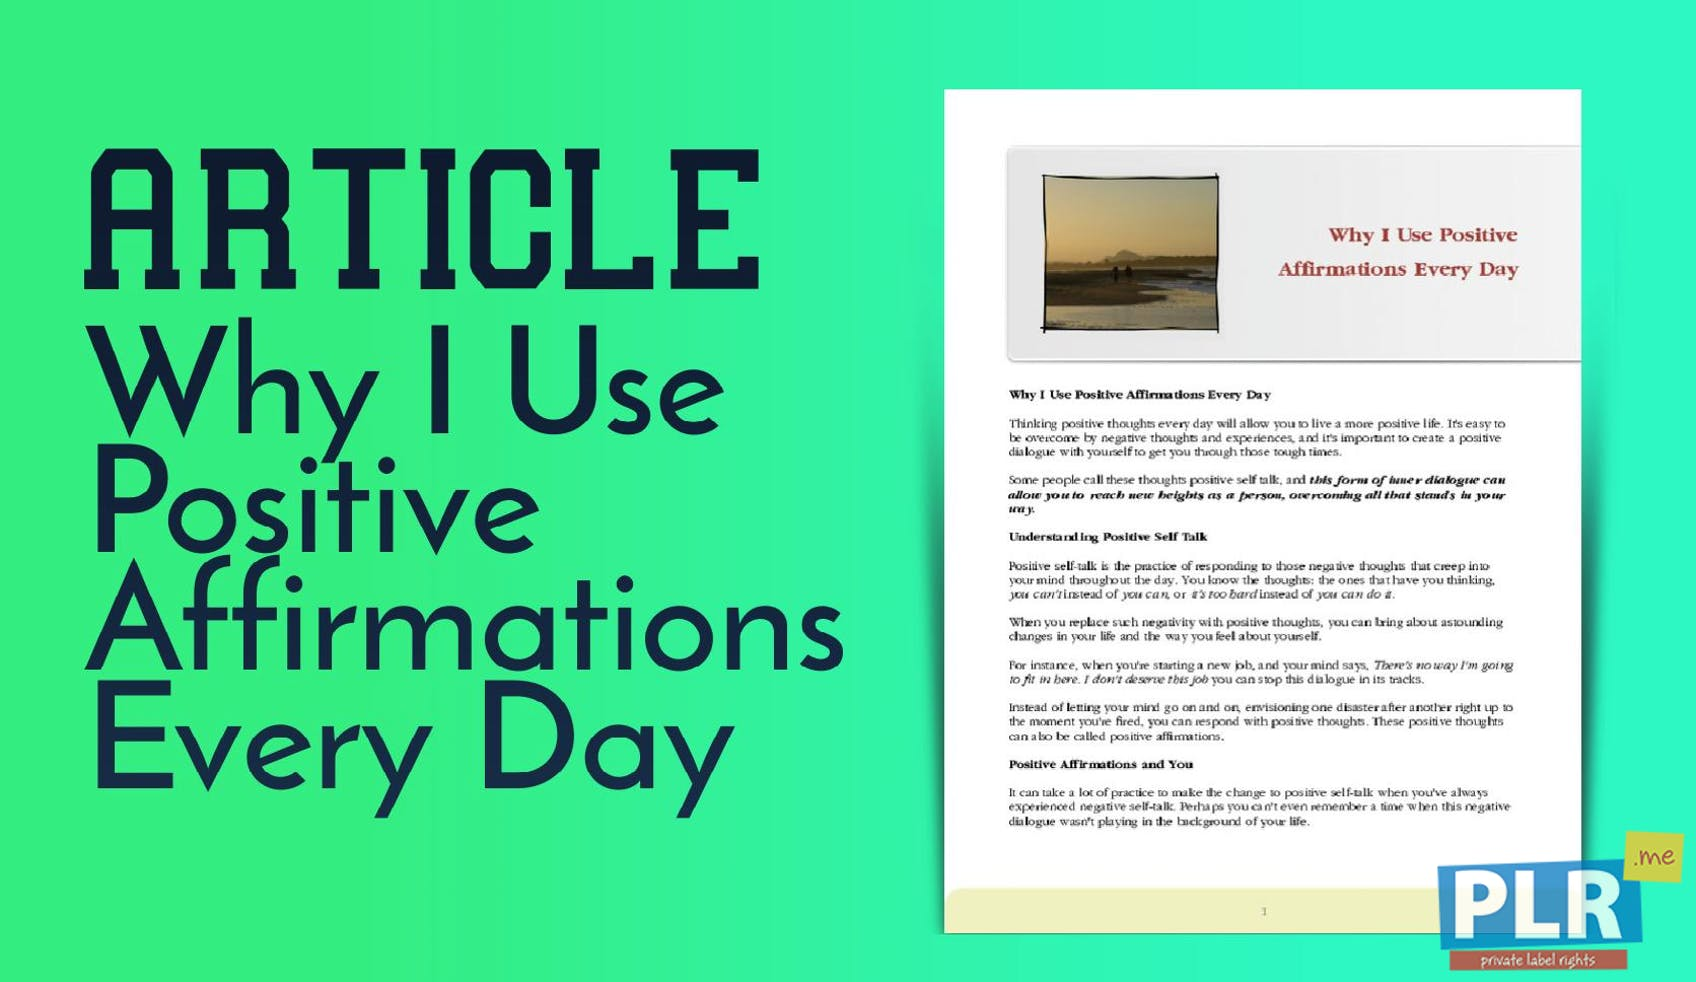 PLR Articles & Blog Posts - Why I Use Positive Affirmations Every Day - PLR .me